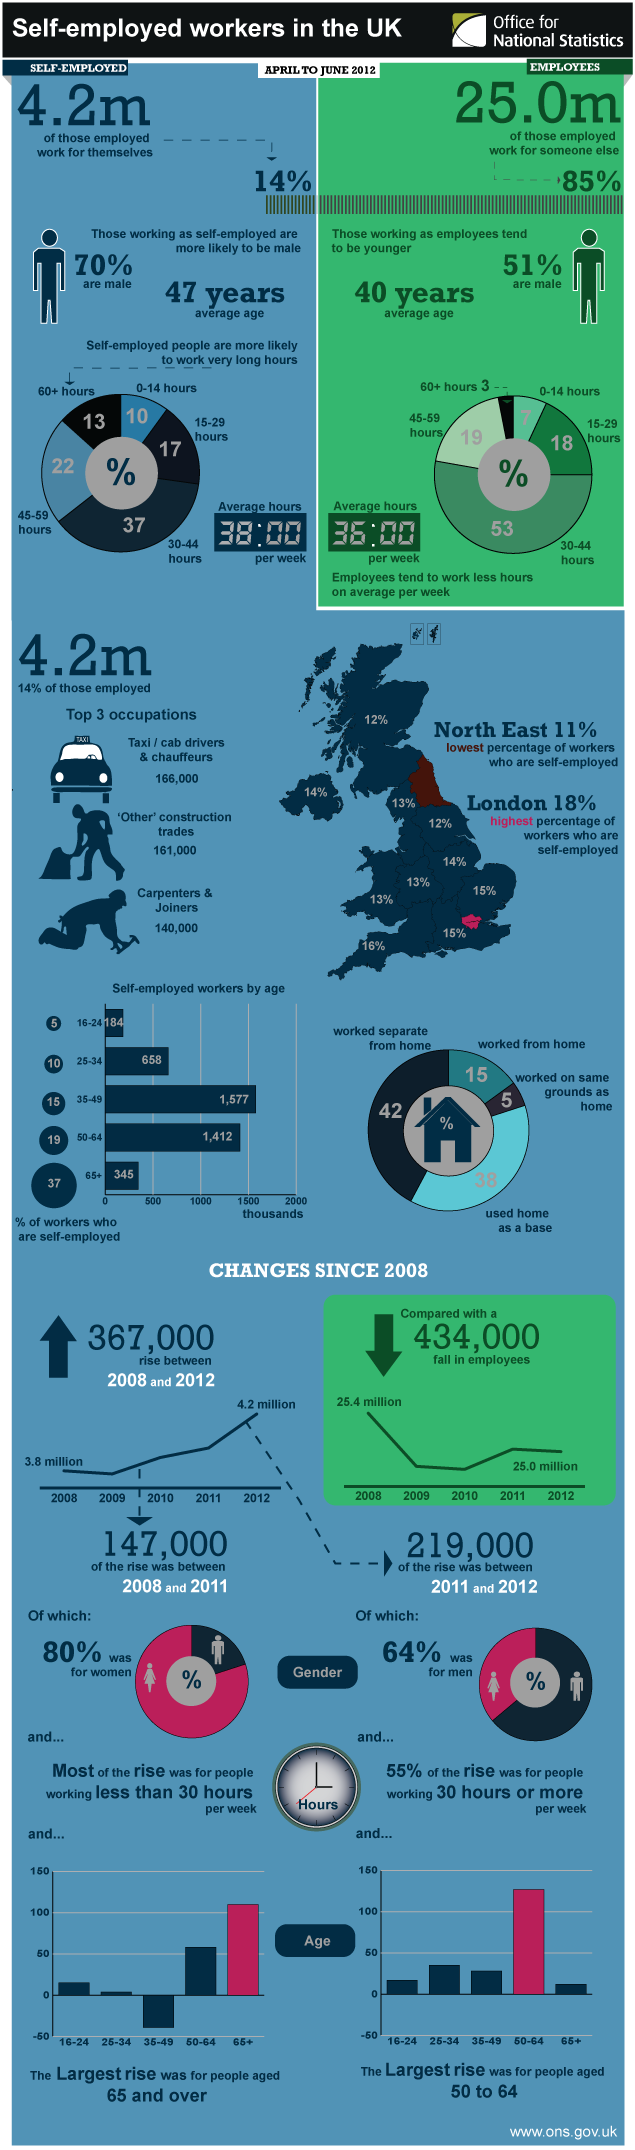 Infographic illustrating self-employed workers in the UK